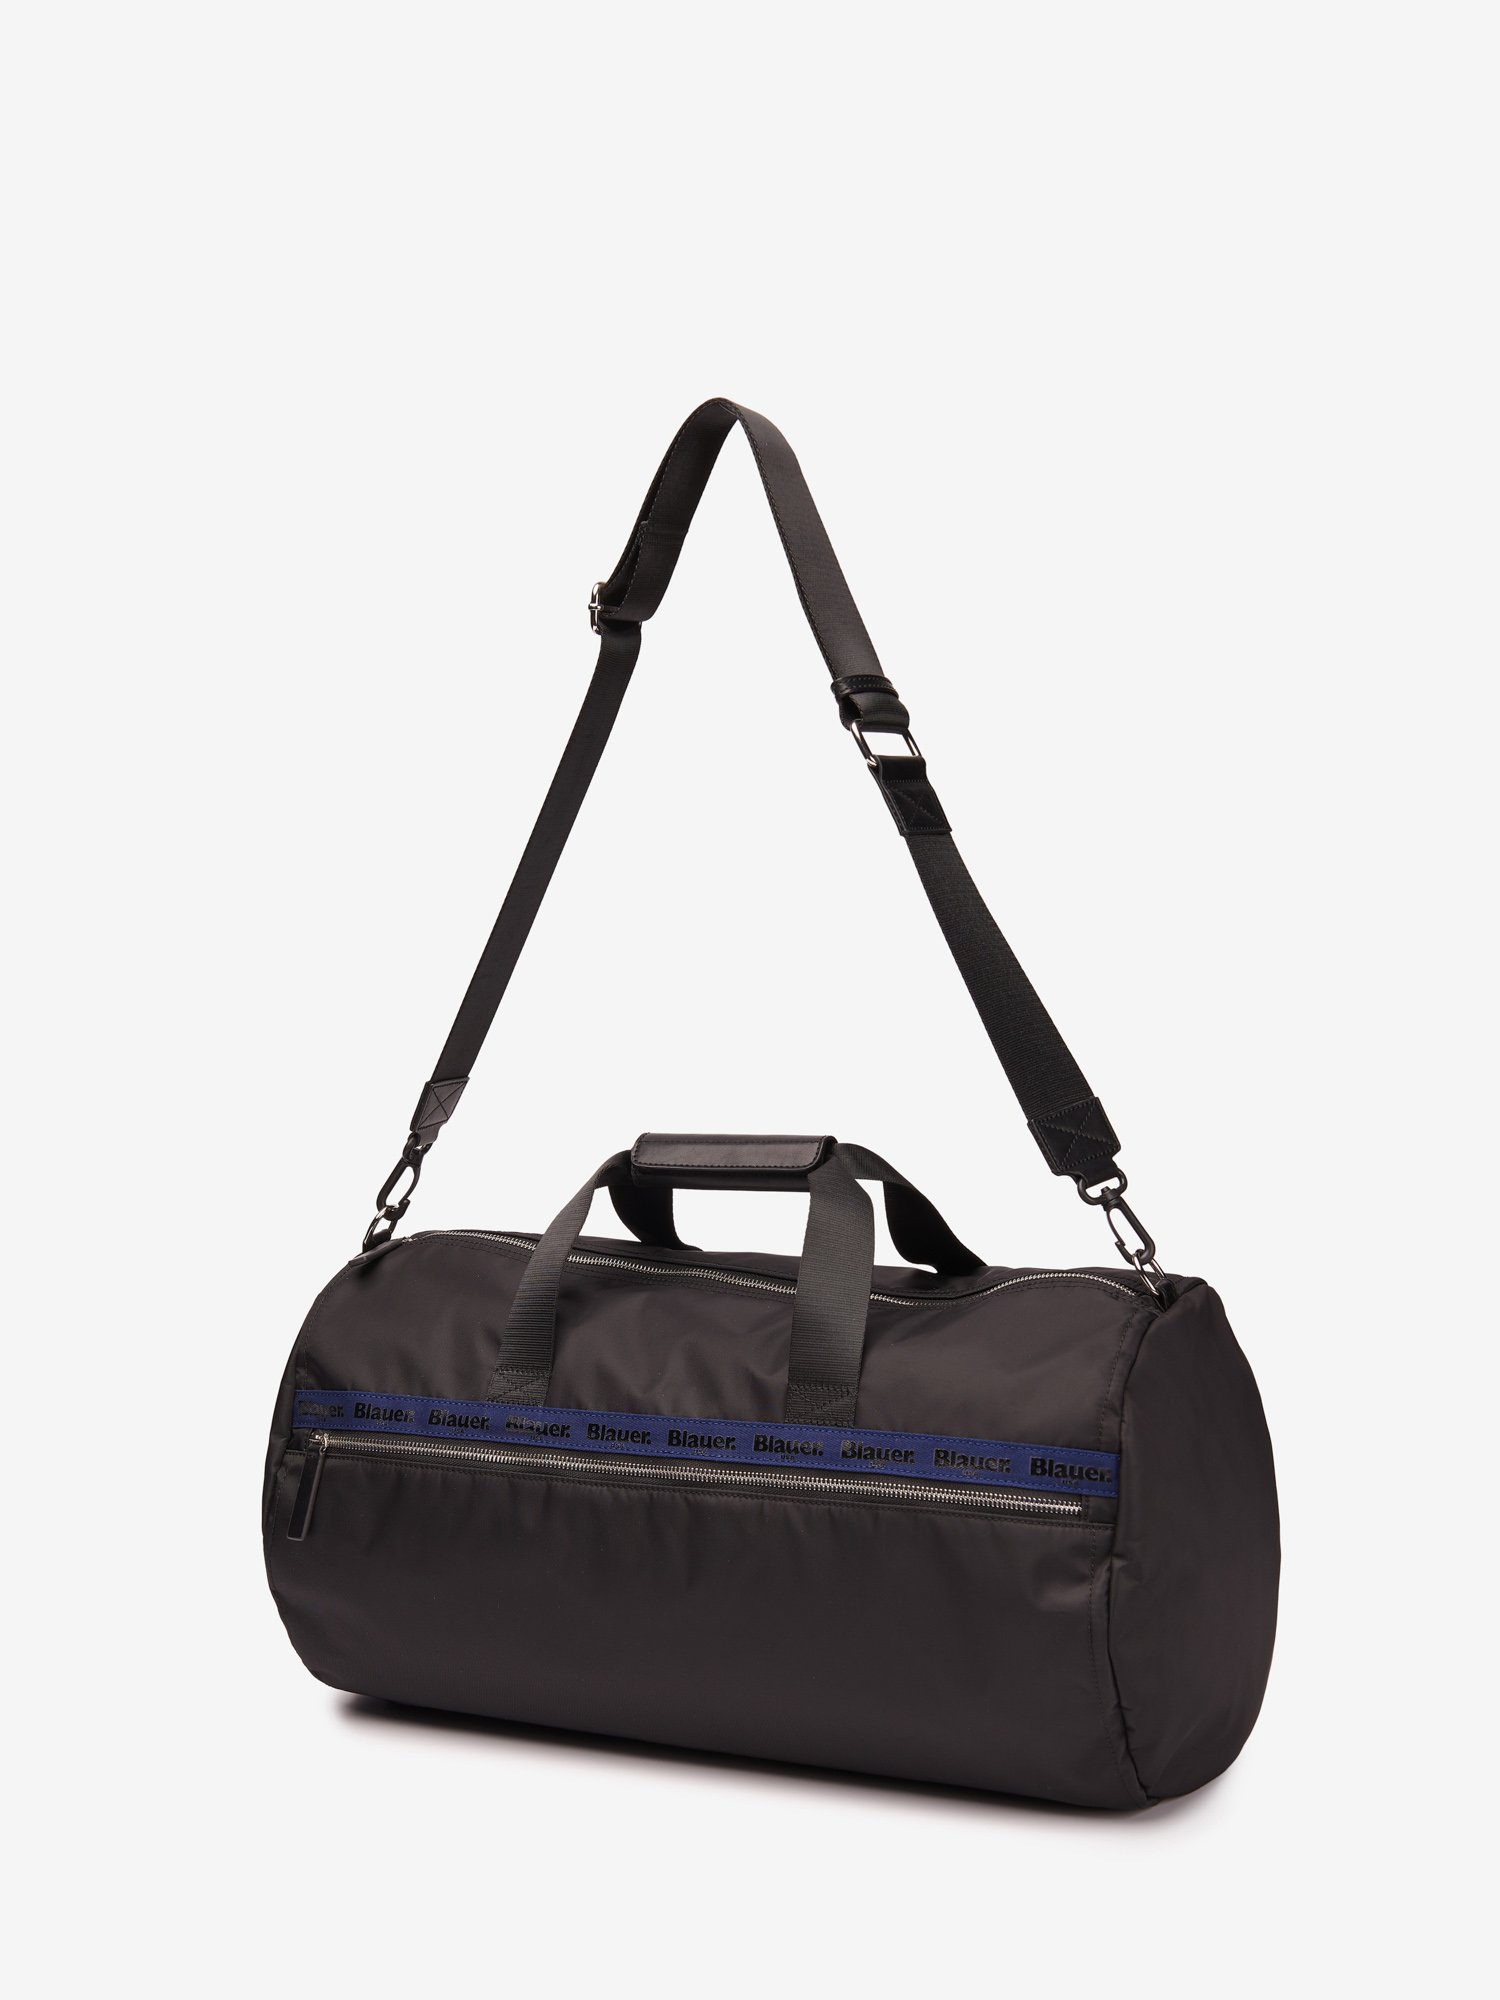 KEVIN TRAVEL BAG - Blauer